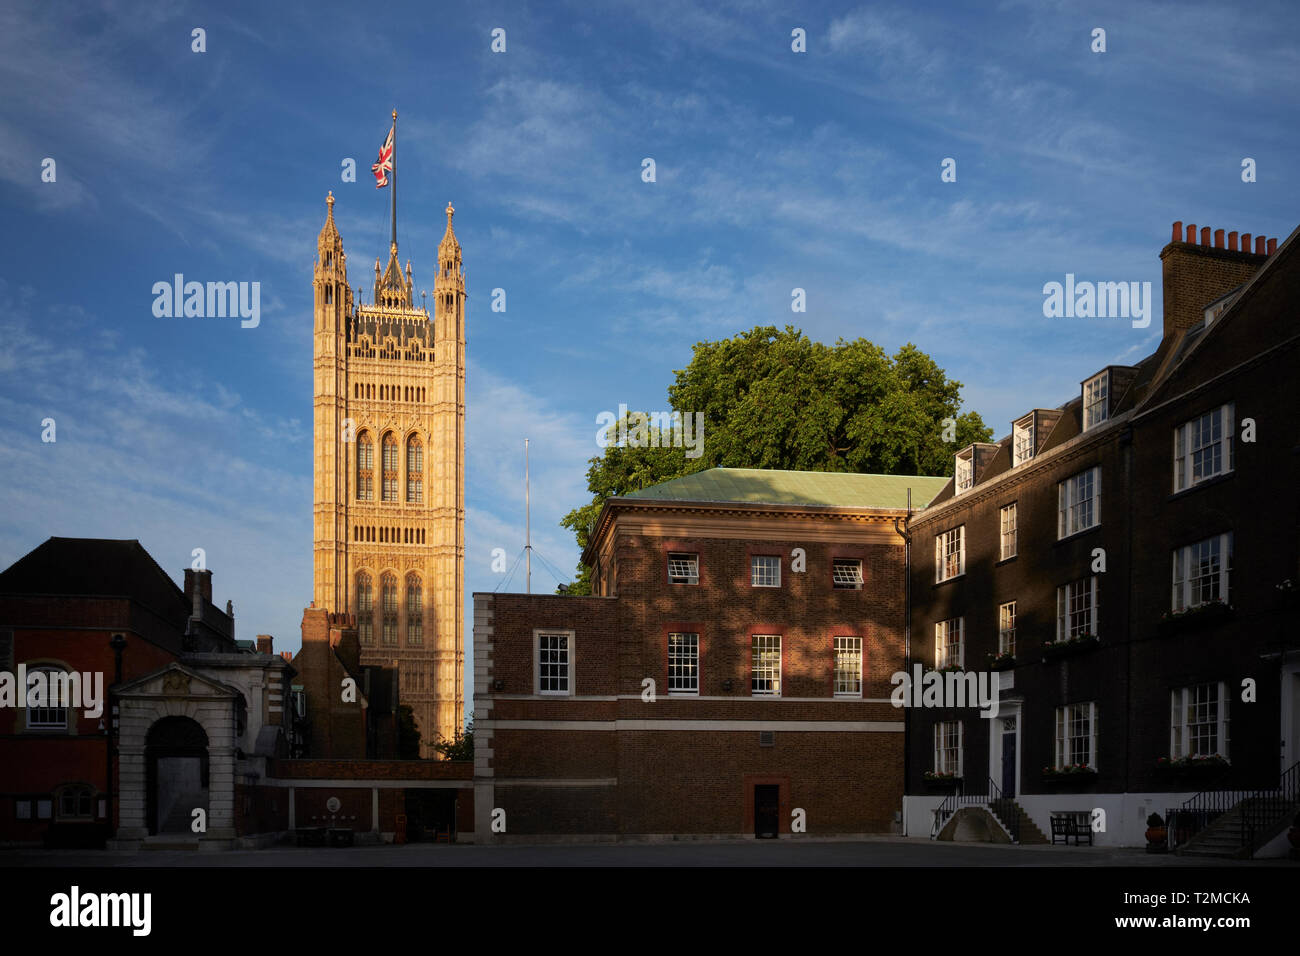 Little Dean's Yard, Westminster School, London, UK, showing Victoria Tower (part of the Palace of Westminster) - Stock Image